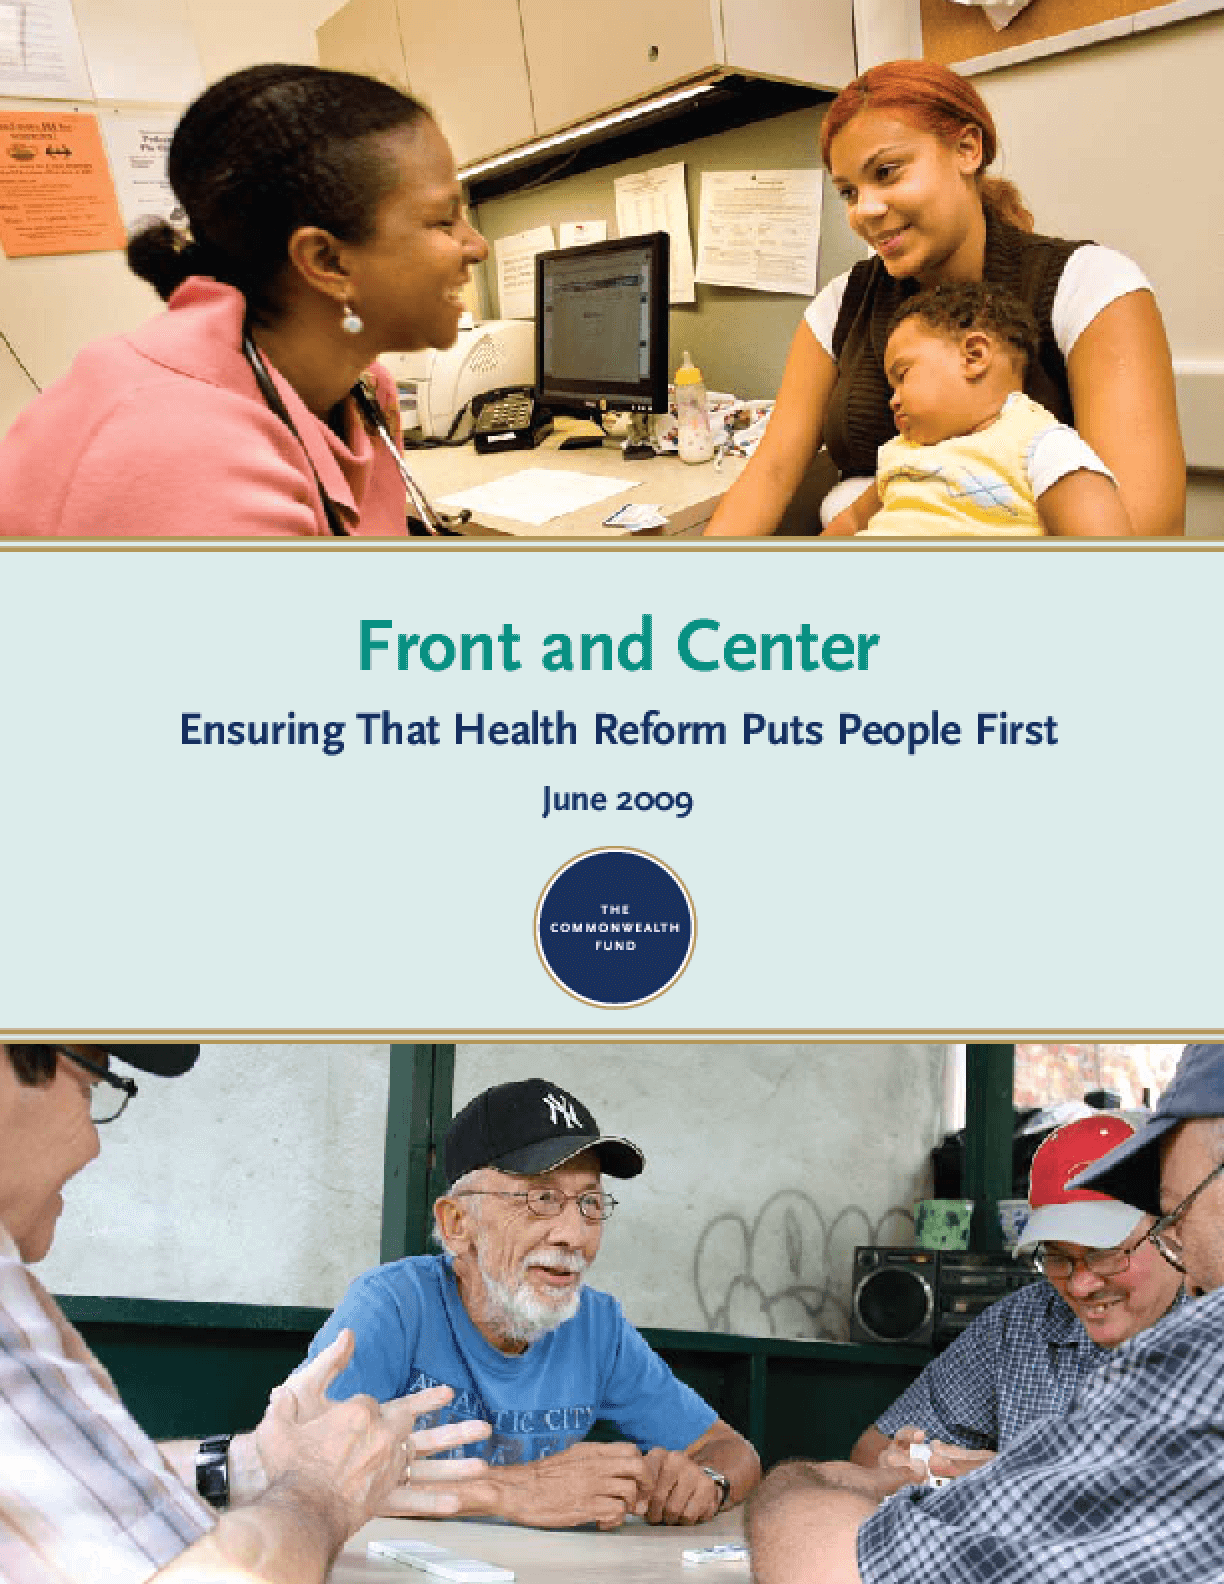 Front and Center: Ensuring That Health Reform Puts People First